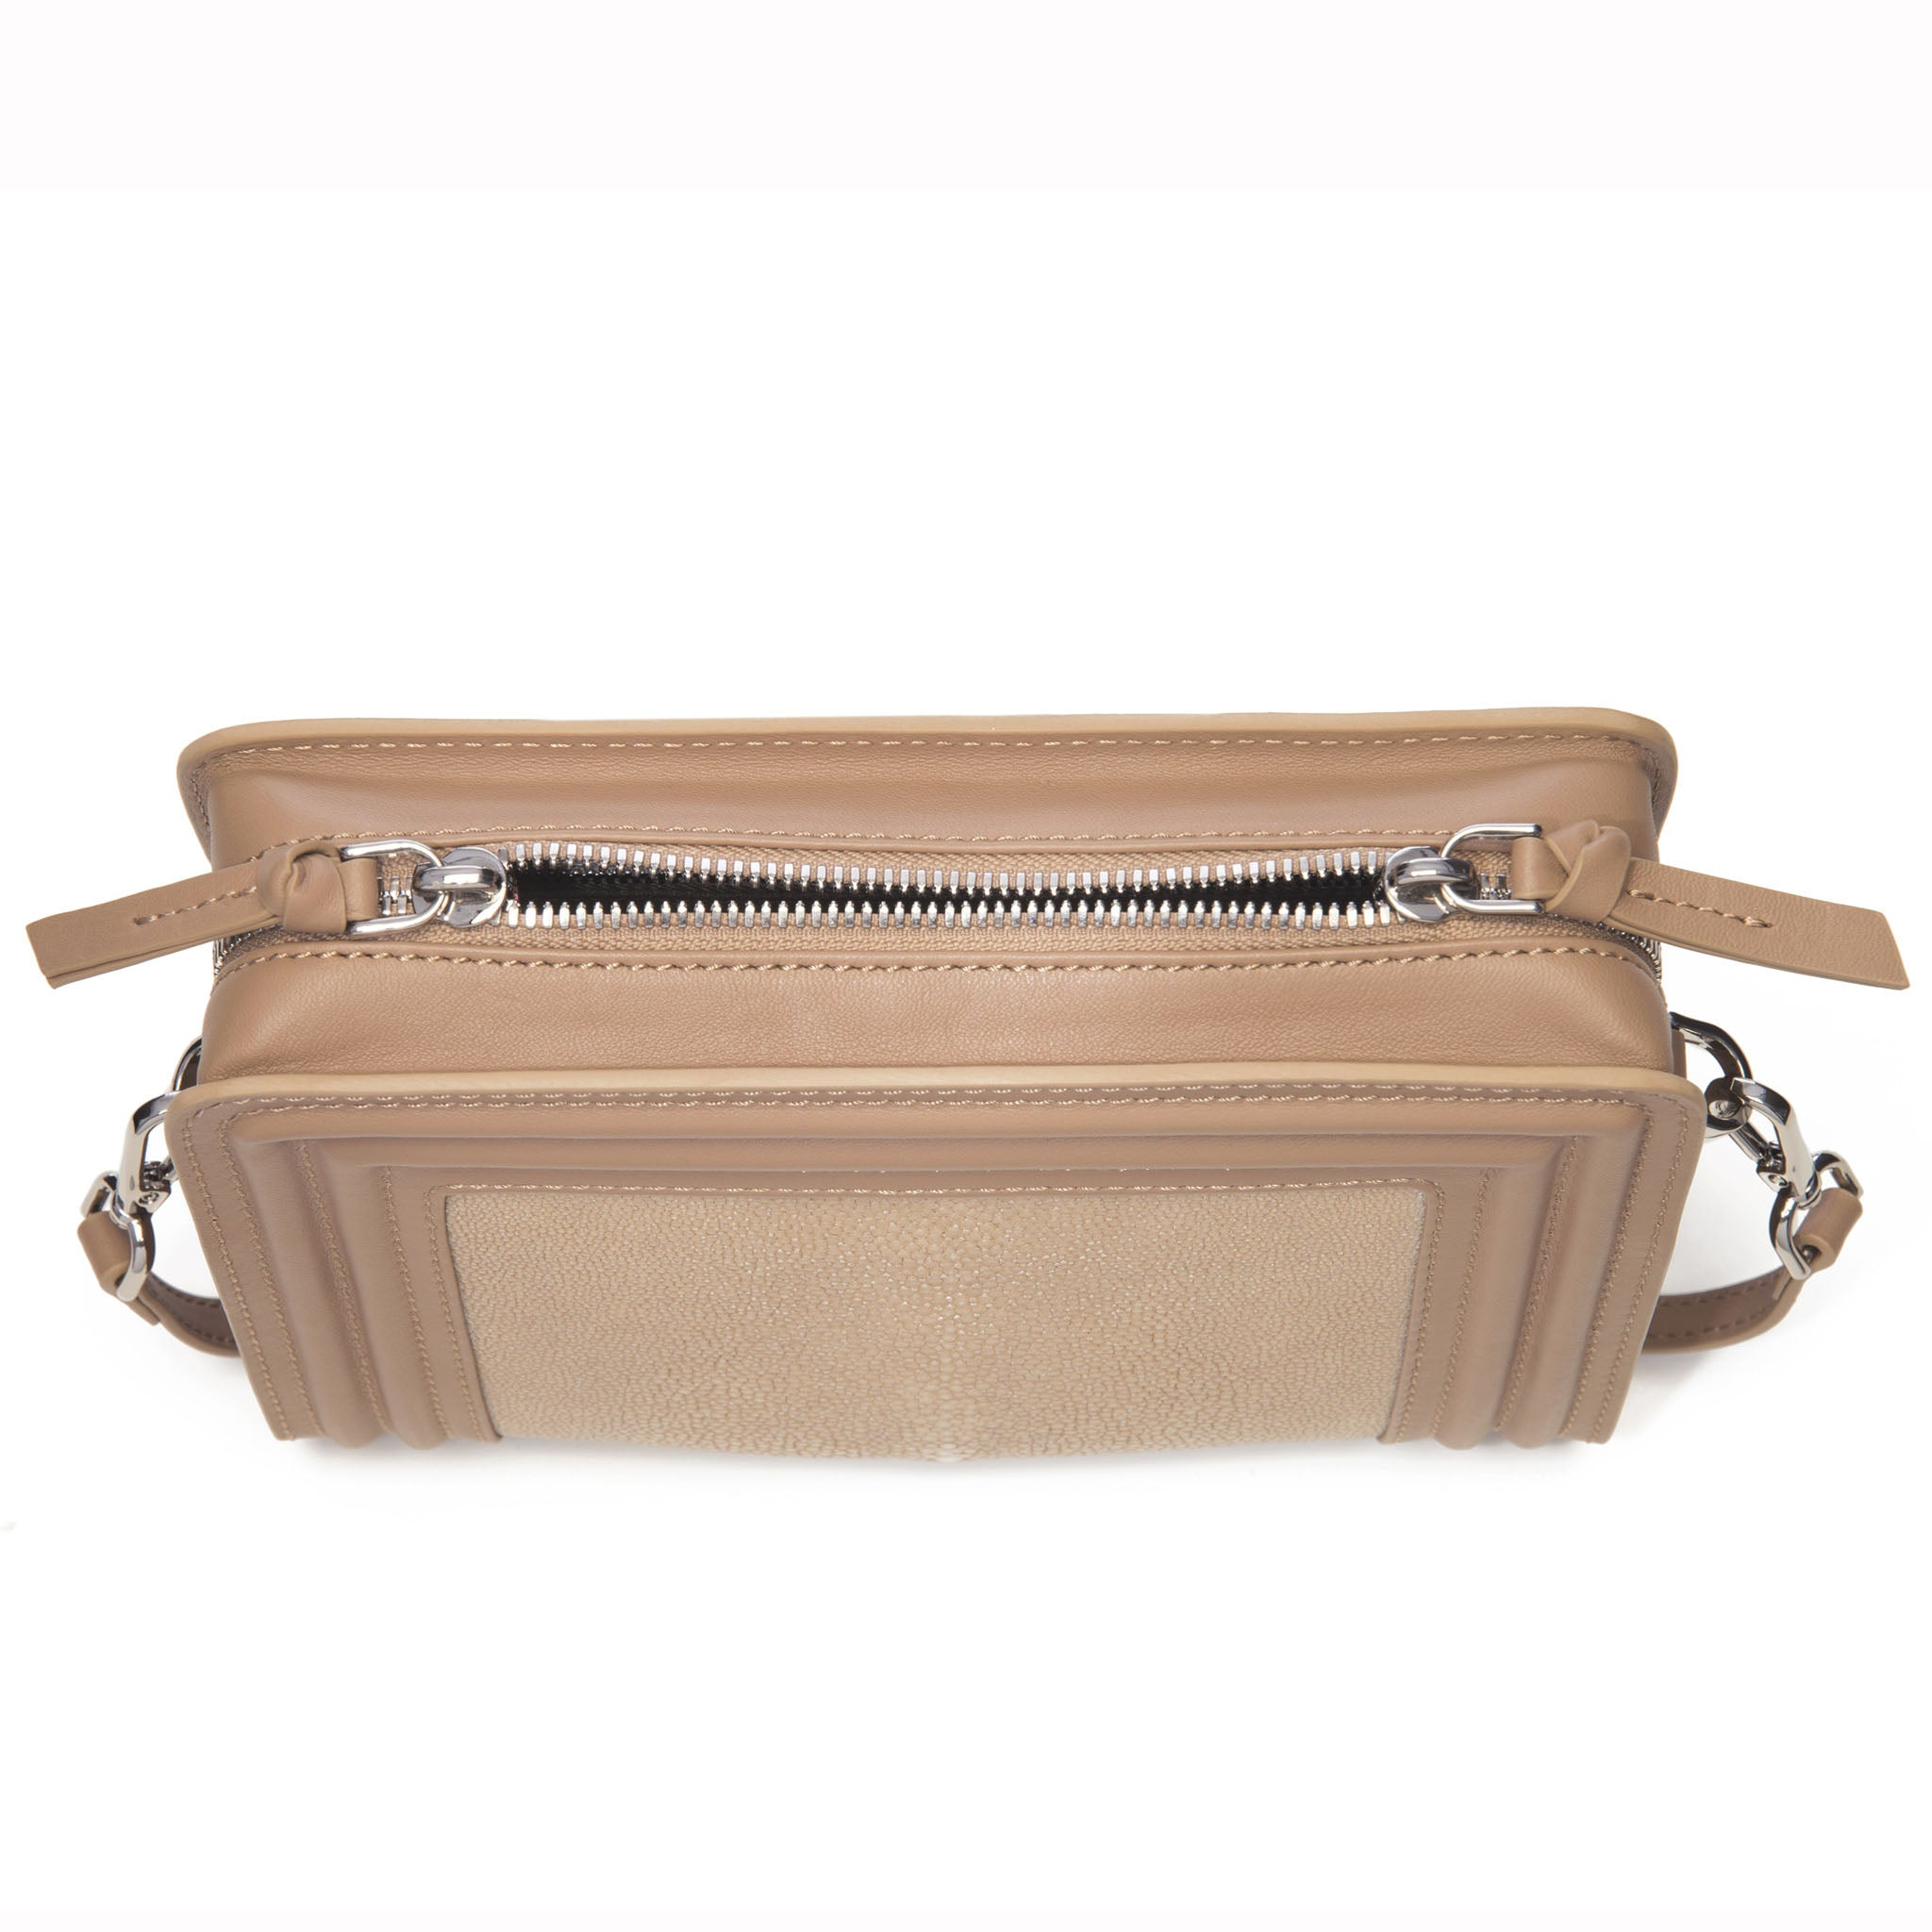 Tan Corded Leather Frames Putty Stingray Double Zipper Top Cross Body Bag Top View Nora - Vivo Direct